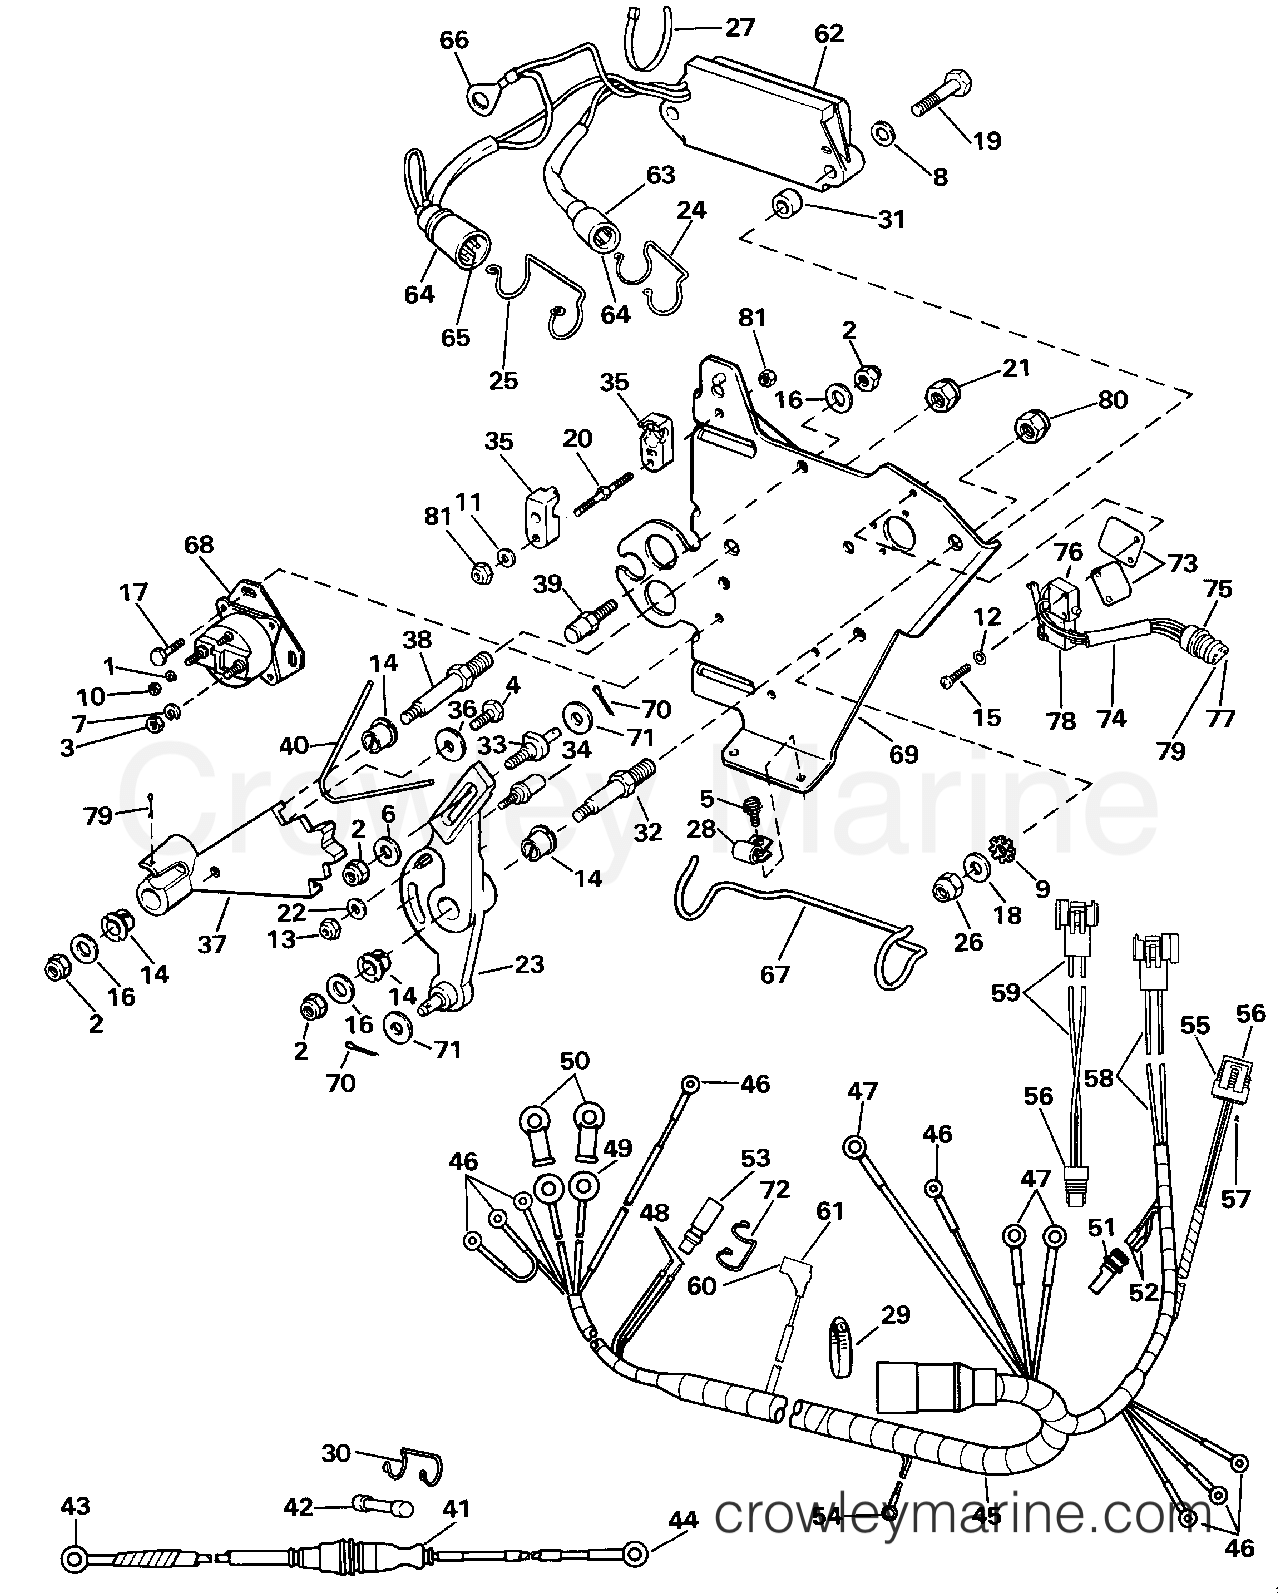 Wire Harness Bracket Solenoid 1990 Omc Stern Drive 3 302bmrpwr Shifter Wiring Diagram Section